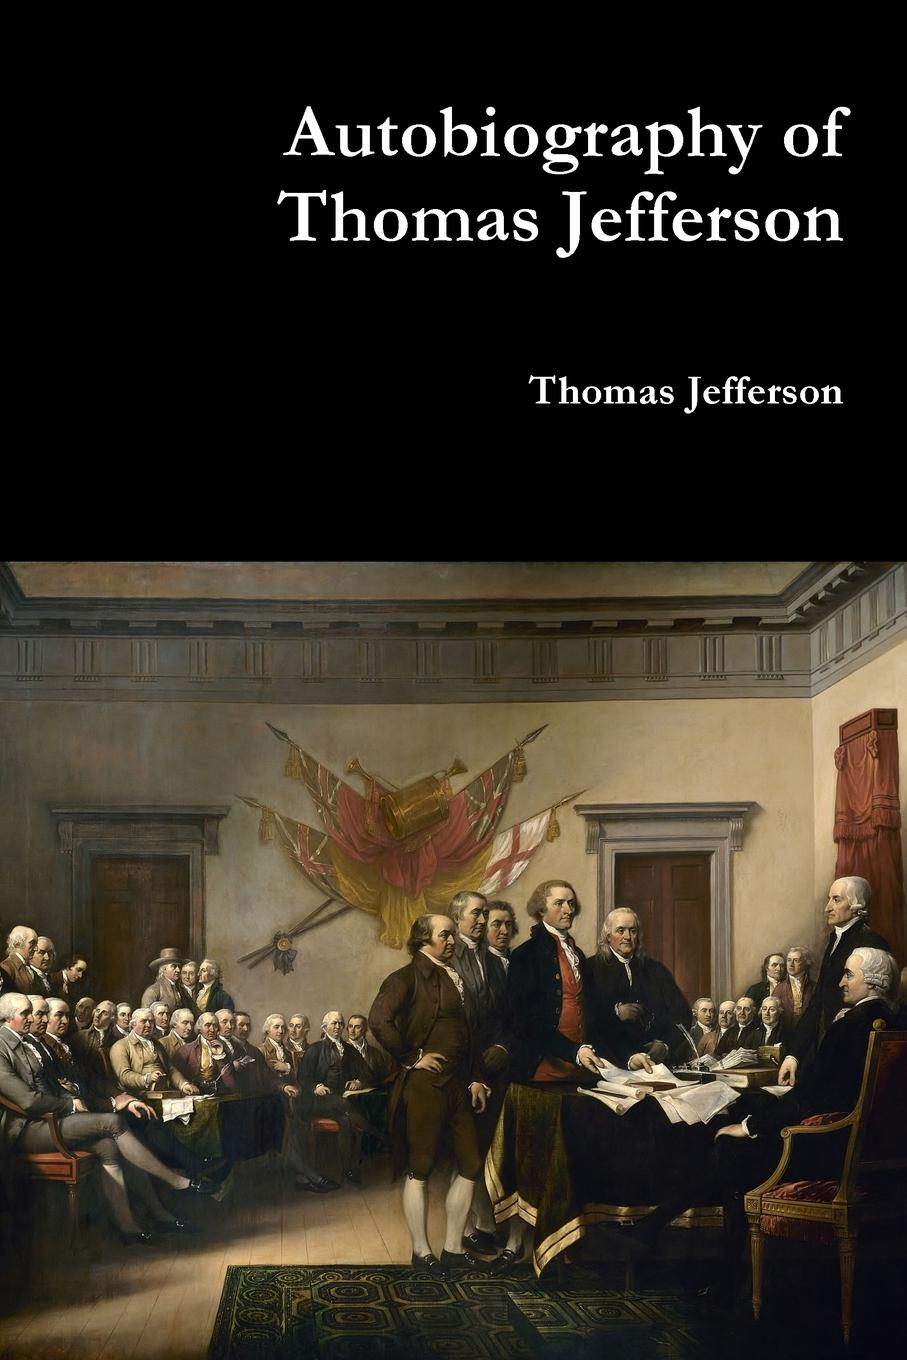 лучшая цена Thomas Jefferson Autobiography of Thomas Jefferson